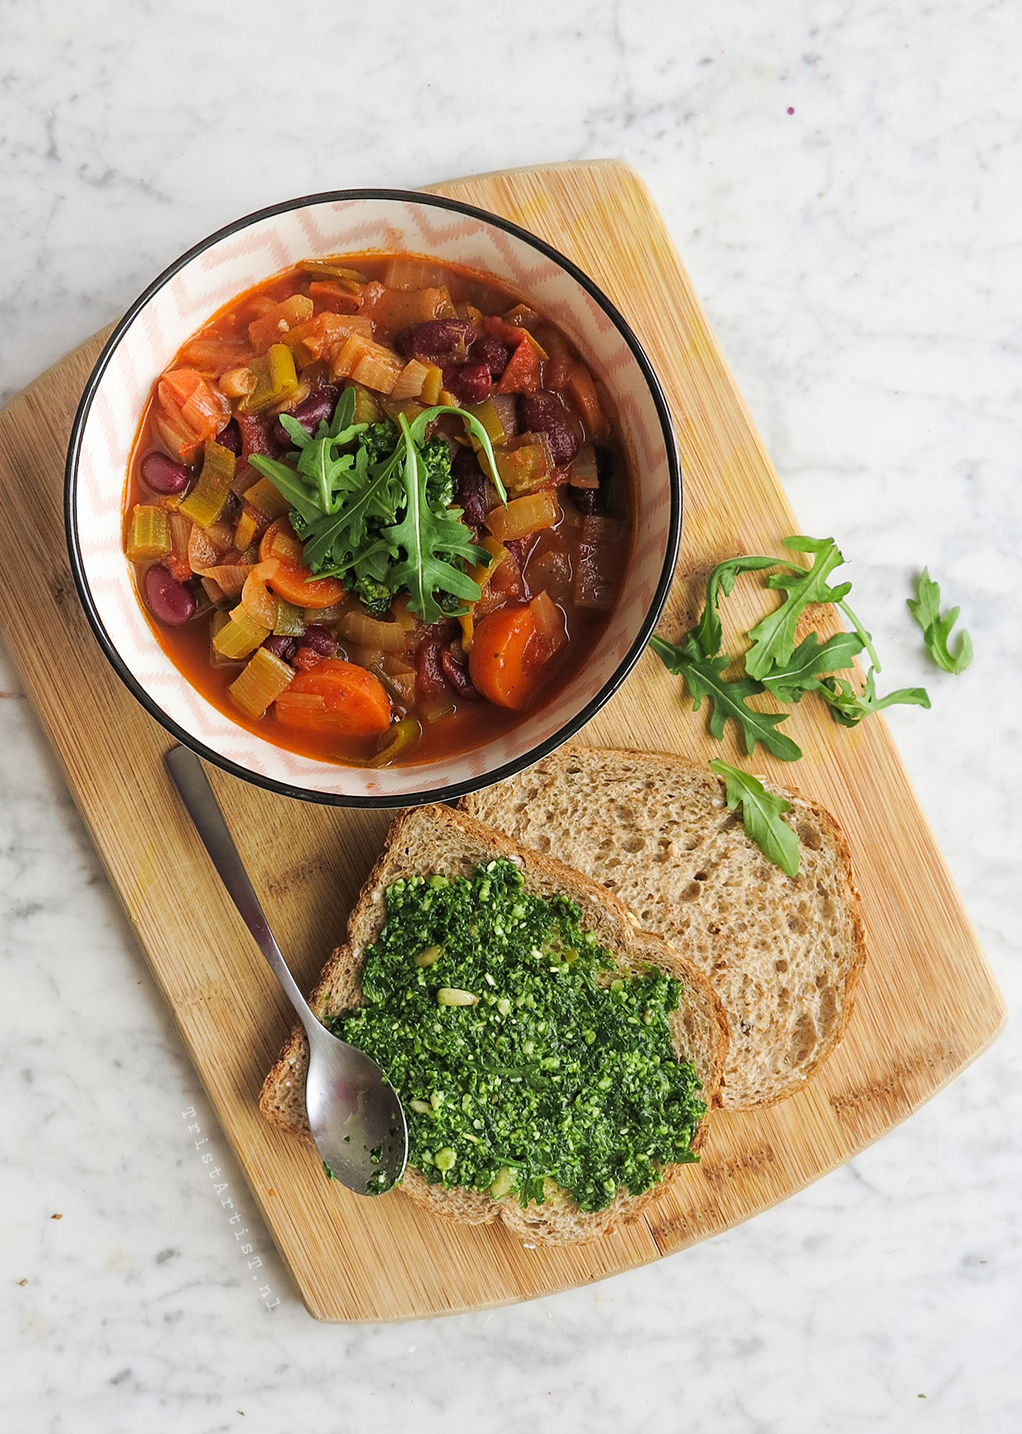 Vegan Friday – Vegetable soup with arugula pesto